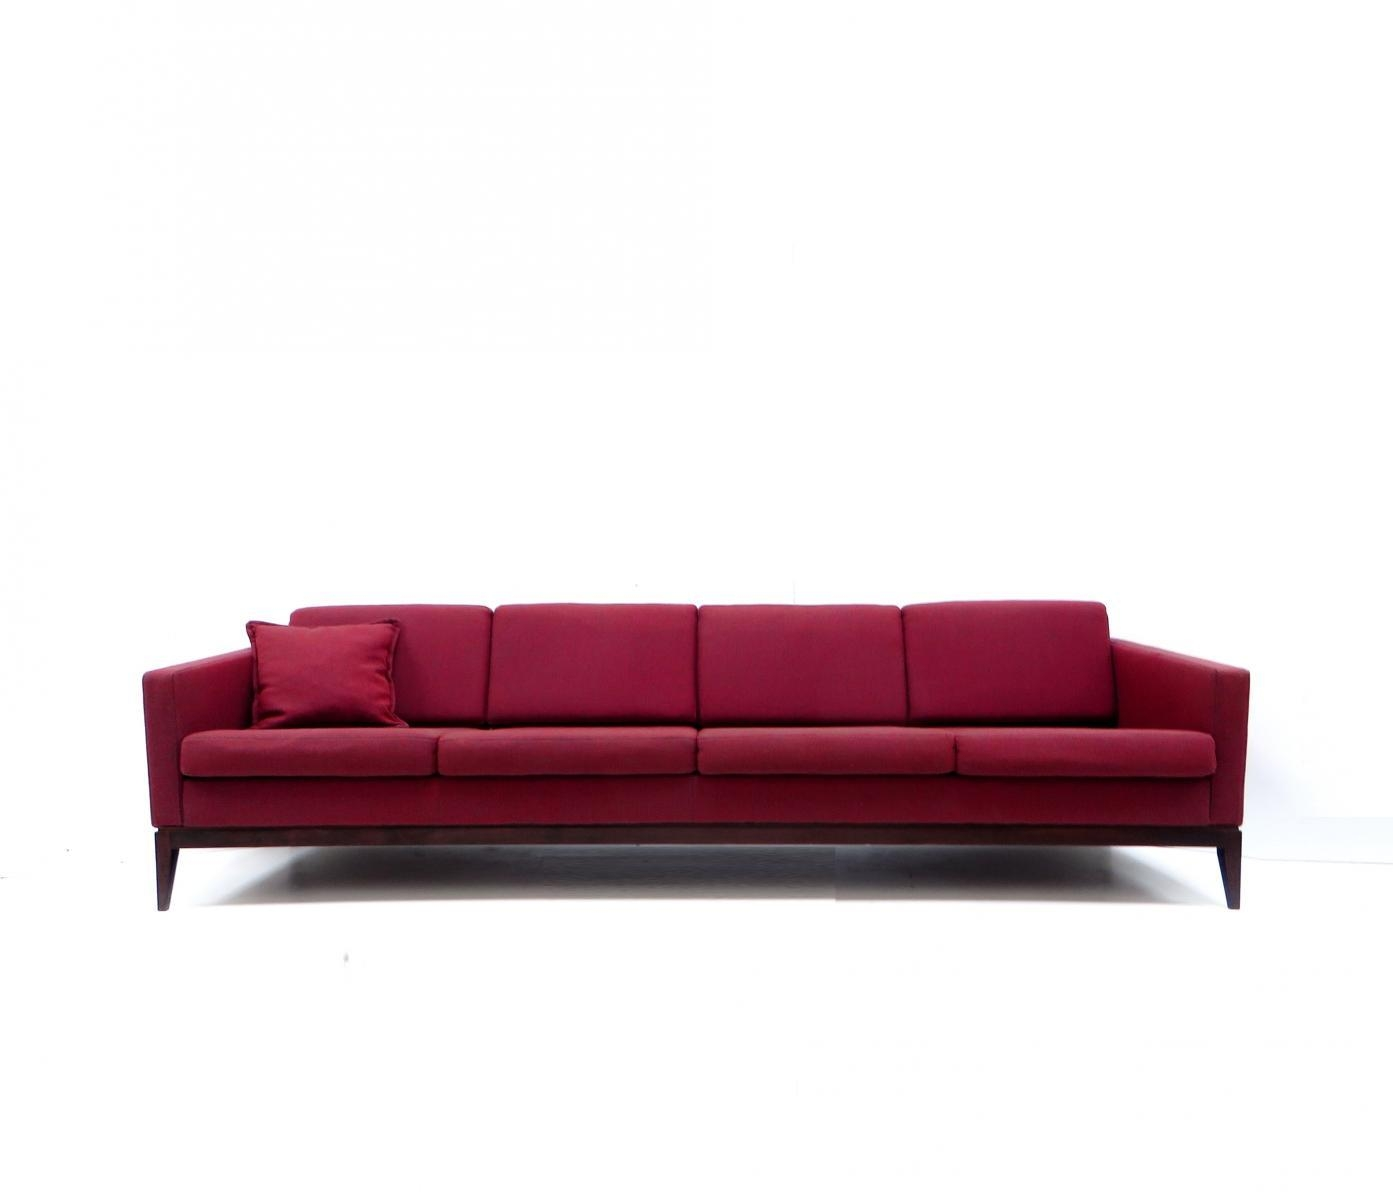 Large Vintage Burgundy Four Seater Sofa For Sale At Pamono For Four Seater Sofas (Image 12 of 20)